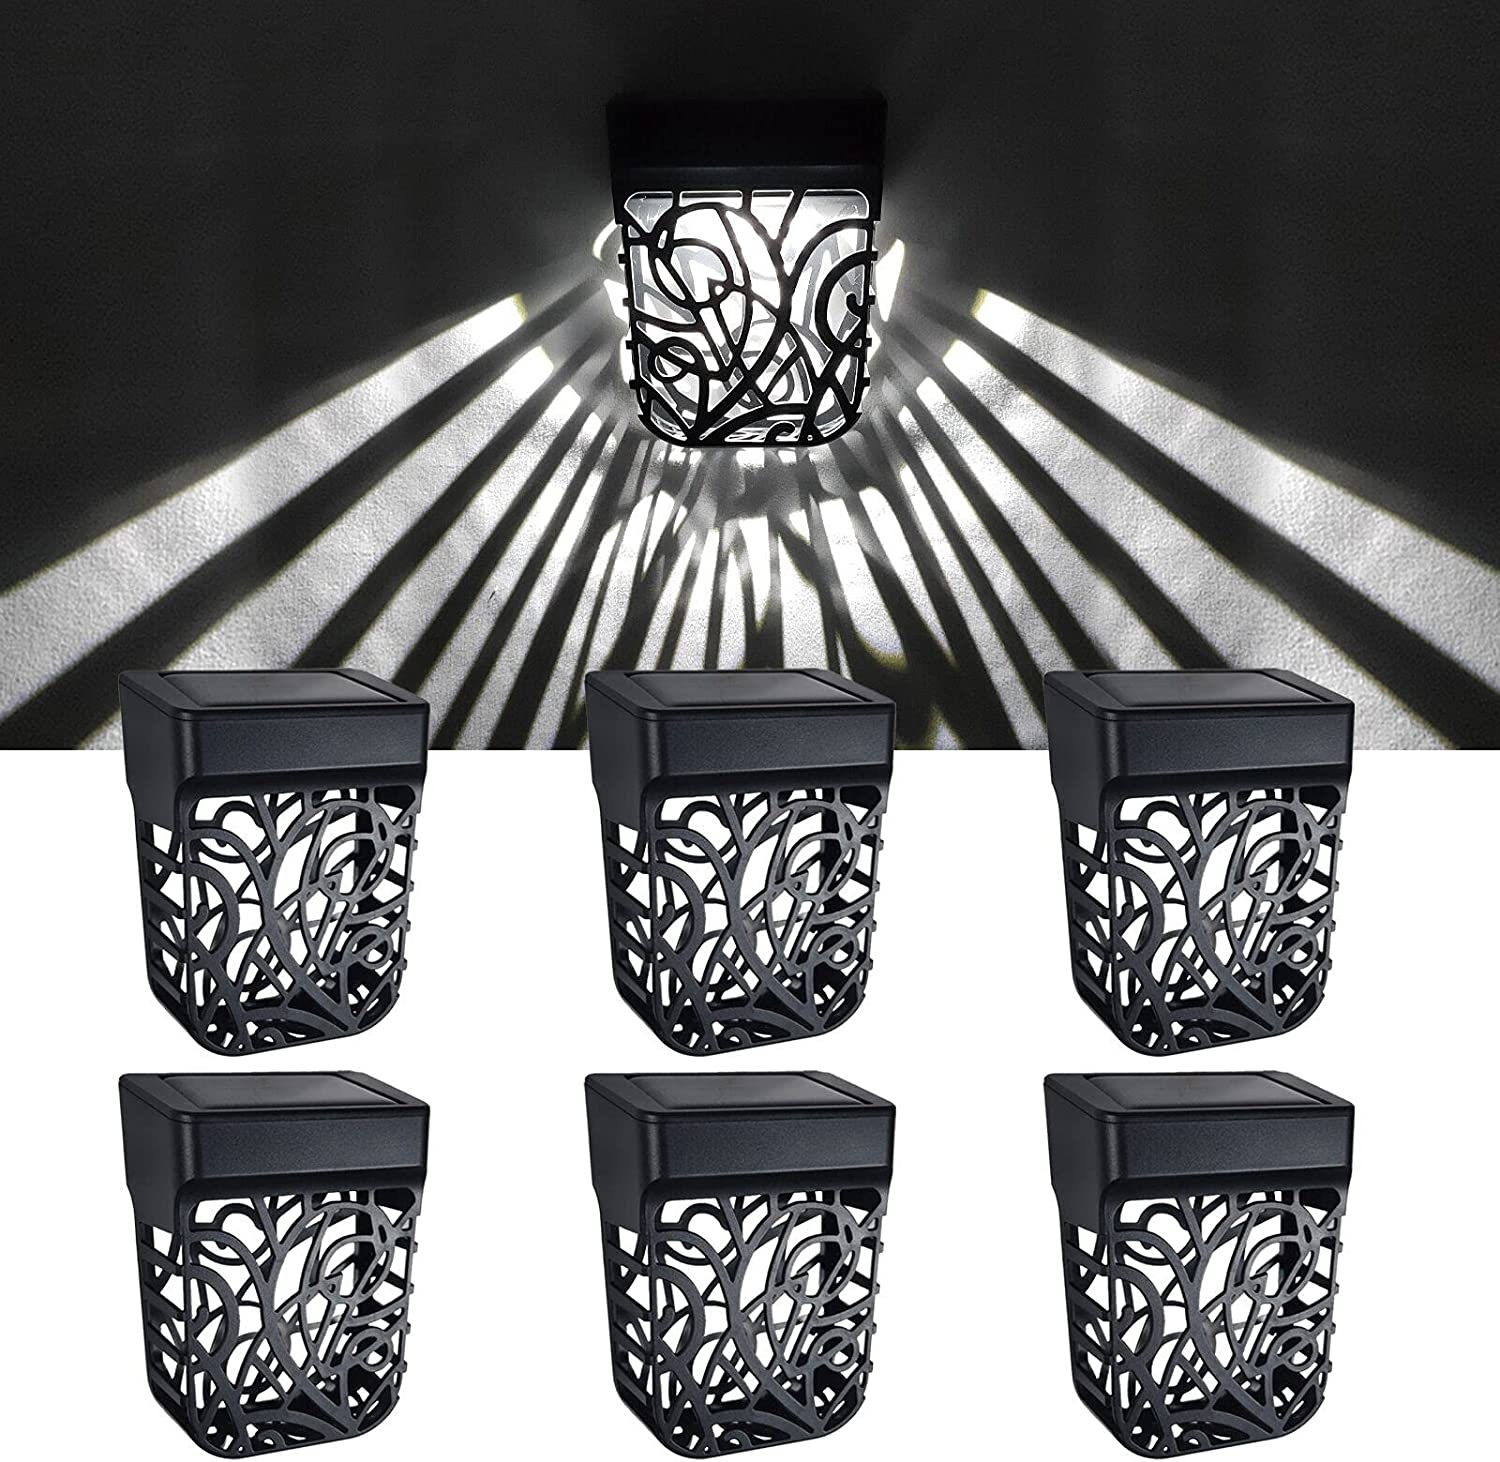 LiyuanQ Solar Fence Lights Solar Fence Lights Outdoor Waterproof LED Waterproof Outside Decklights Outdoor Decor Outside Step Lights Garden Post Fence Deck,Patio Fenc Lighting Decoration(6 Pack White)